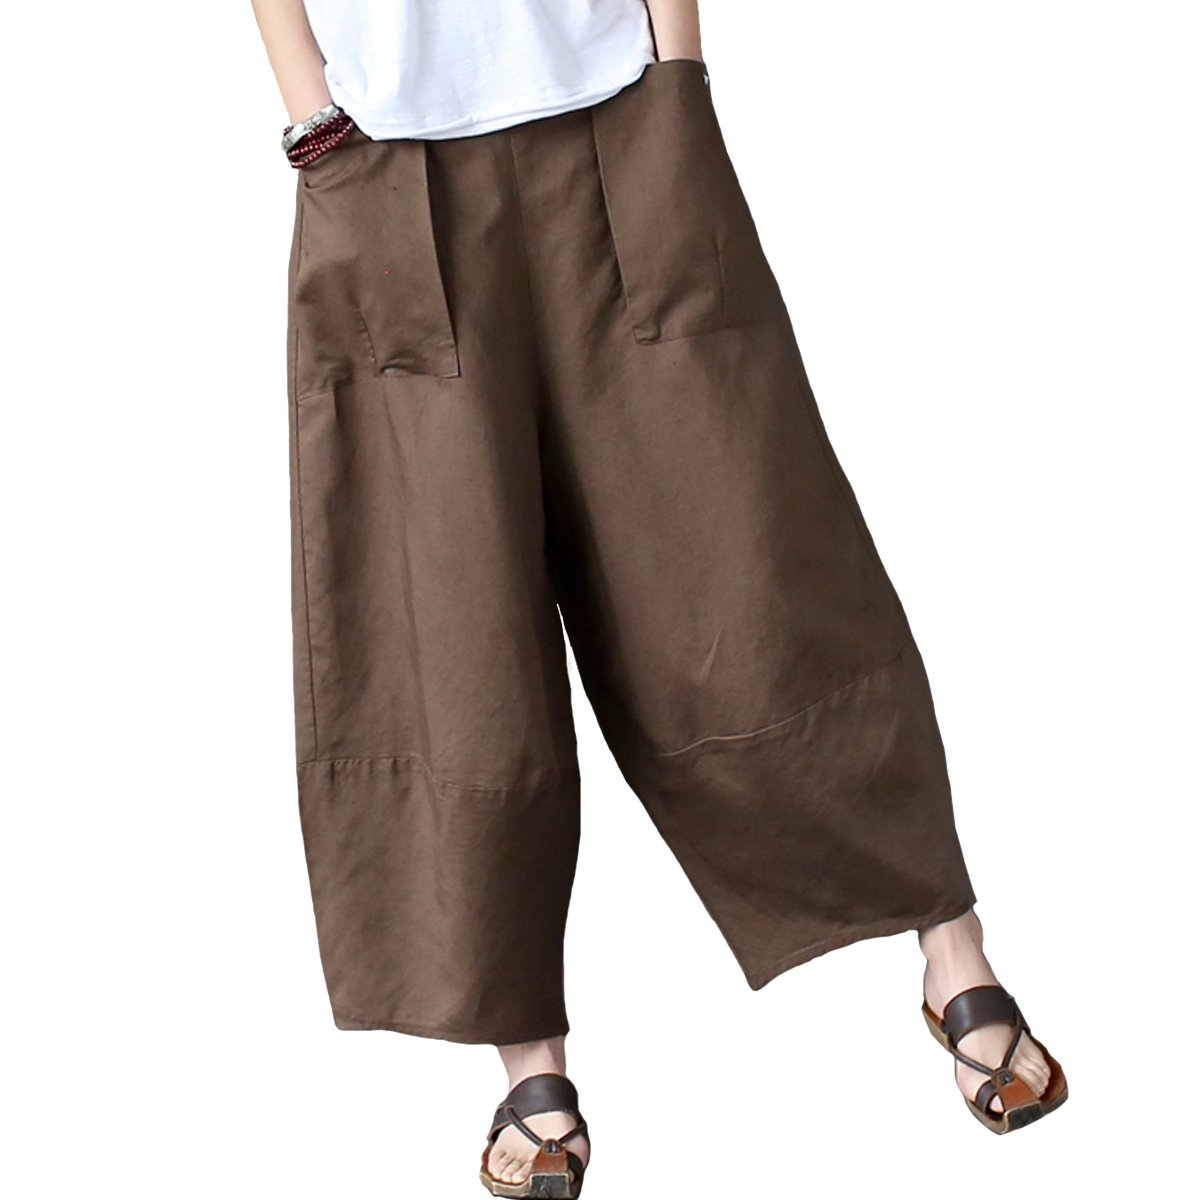 Aeneontrue Women's Casual Linen Wide Leg Pants Trousers with Elastic Waist Brown X-Large